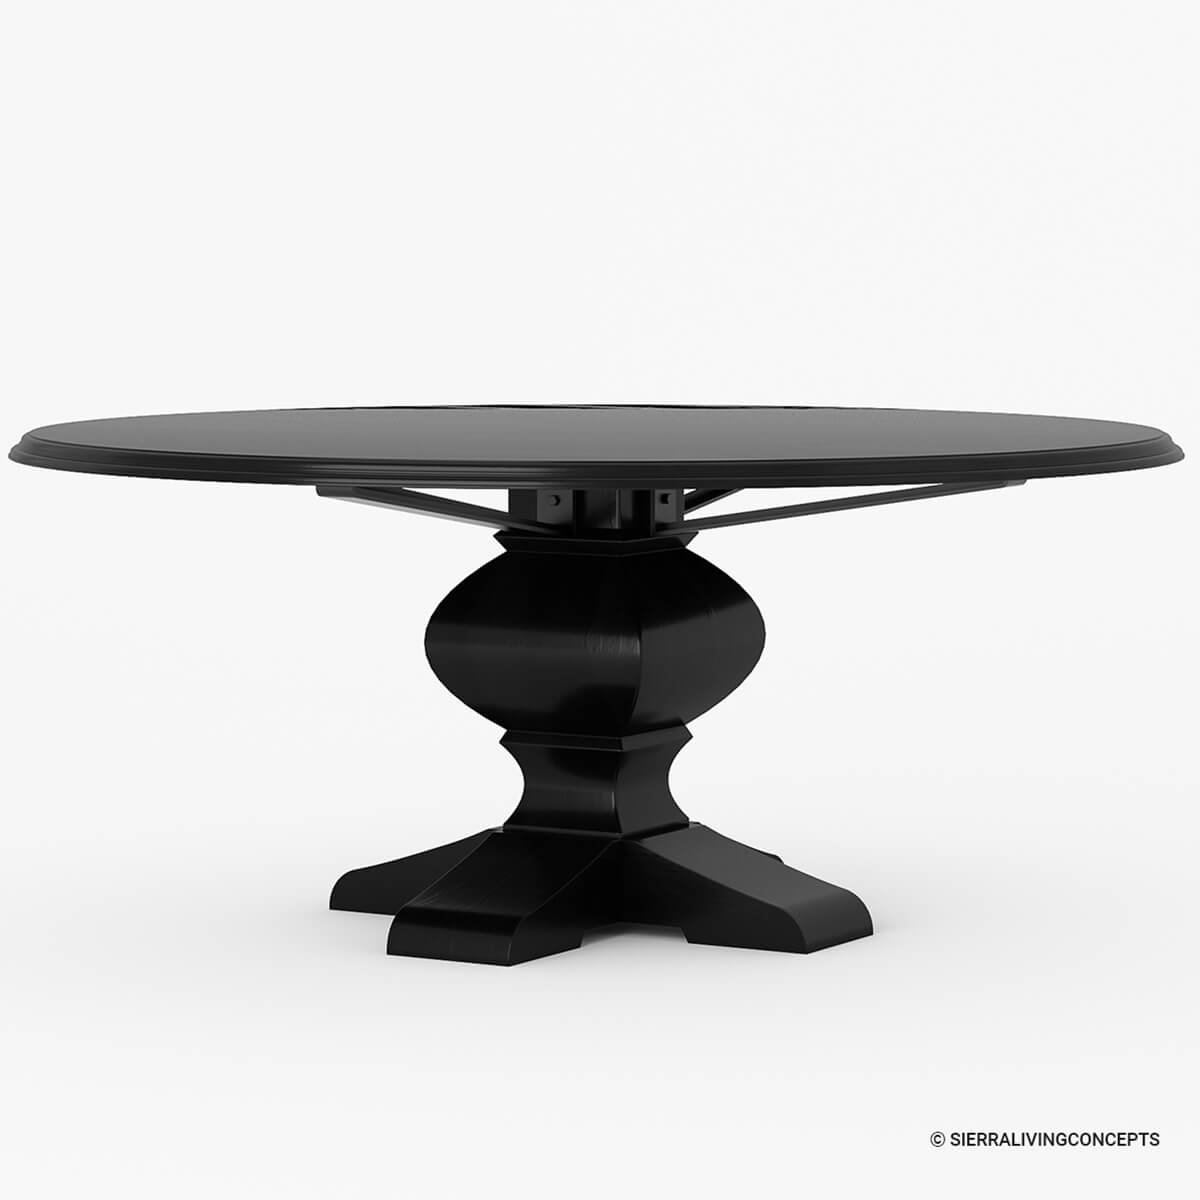 Room dining tables large 84 round dining table for 10 people rustic